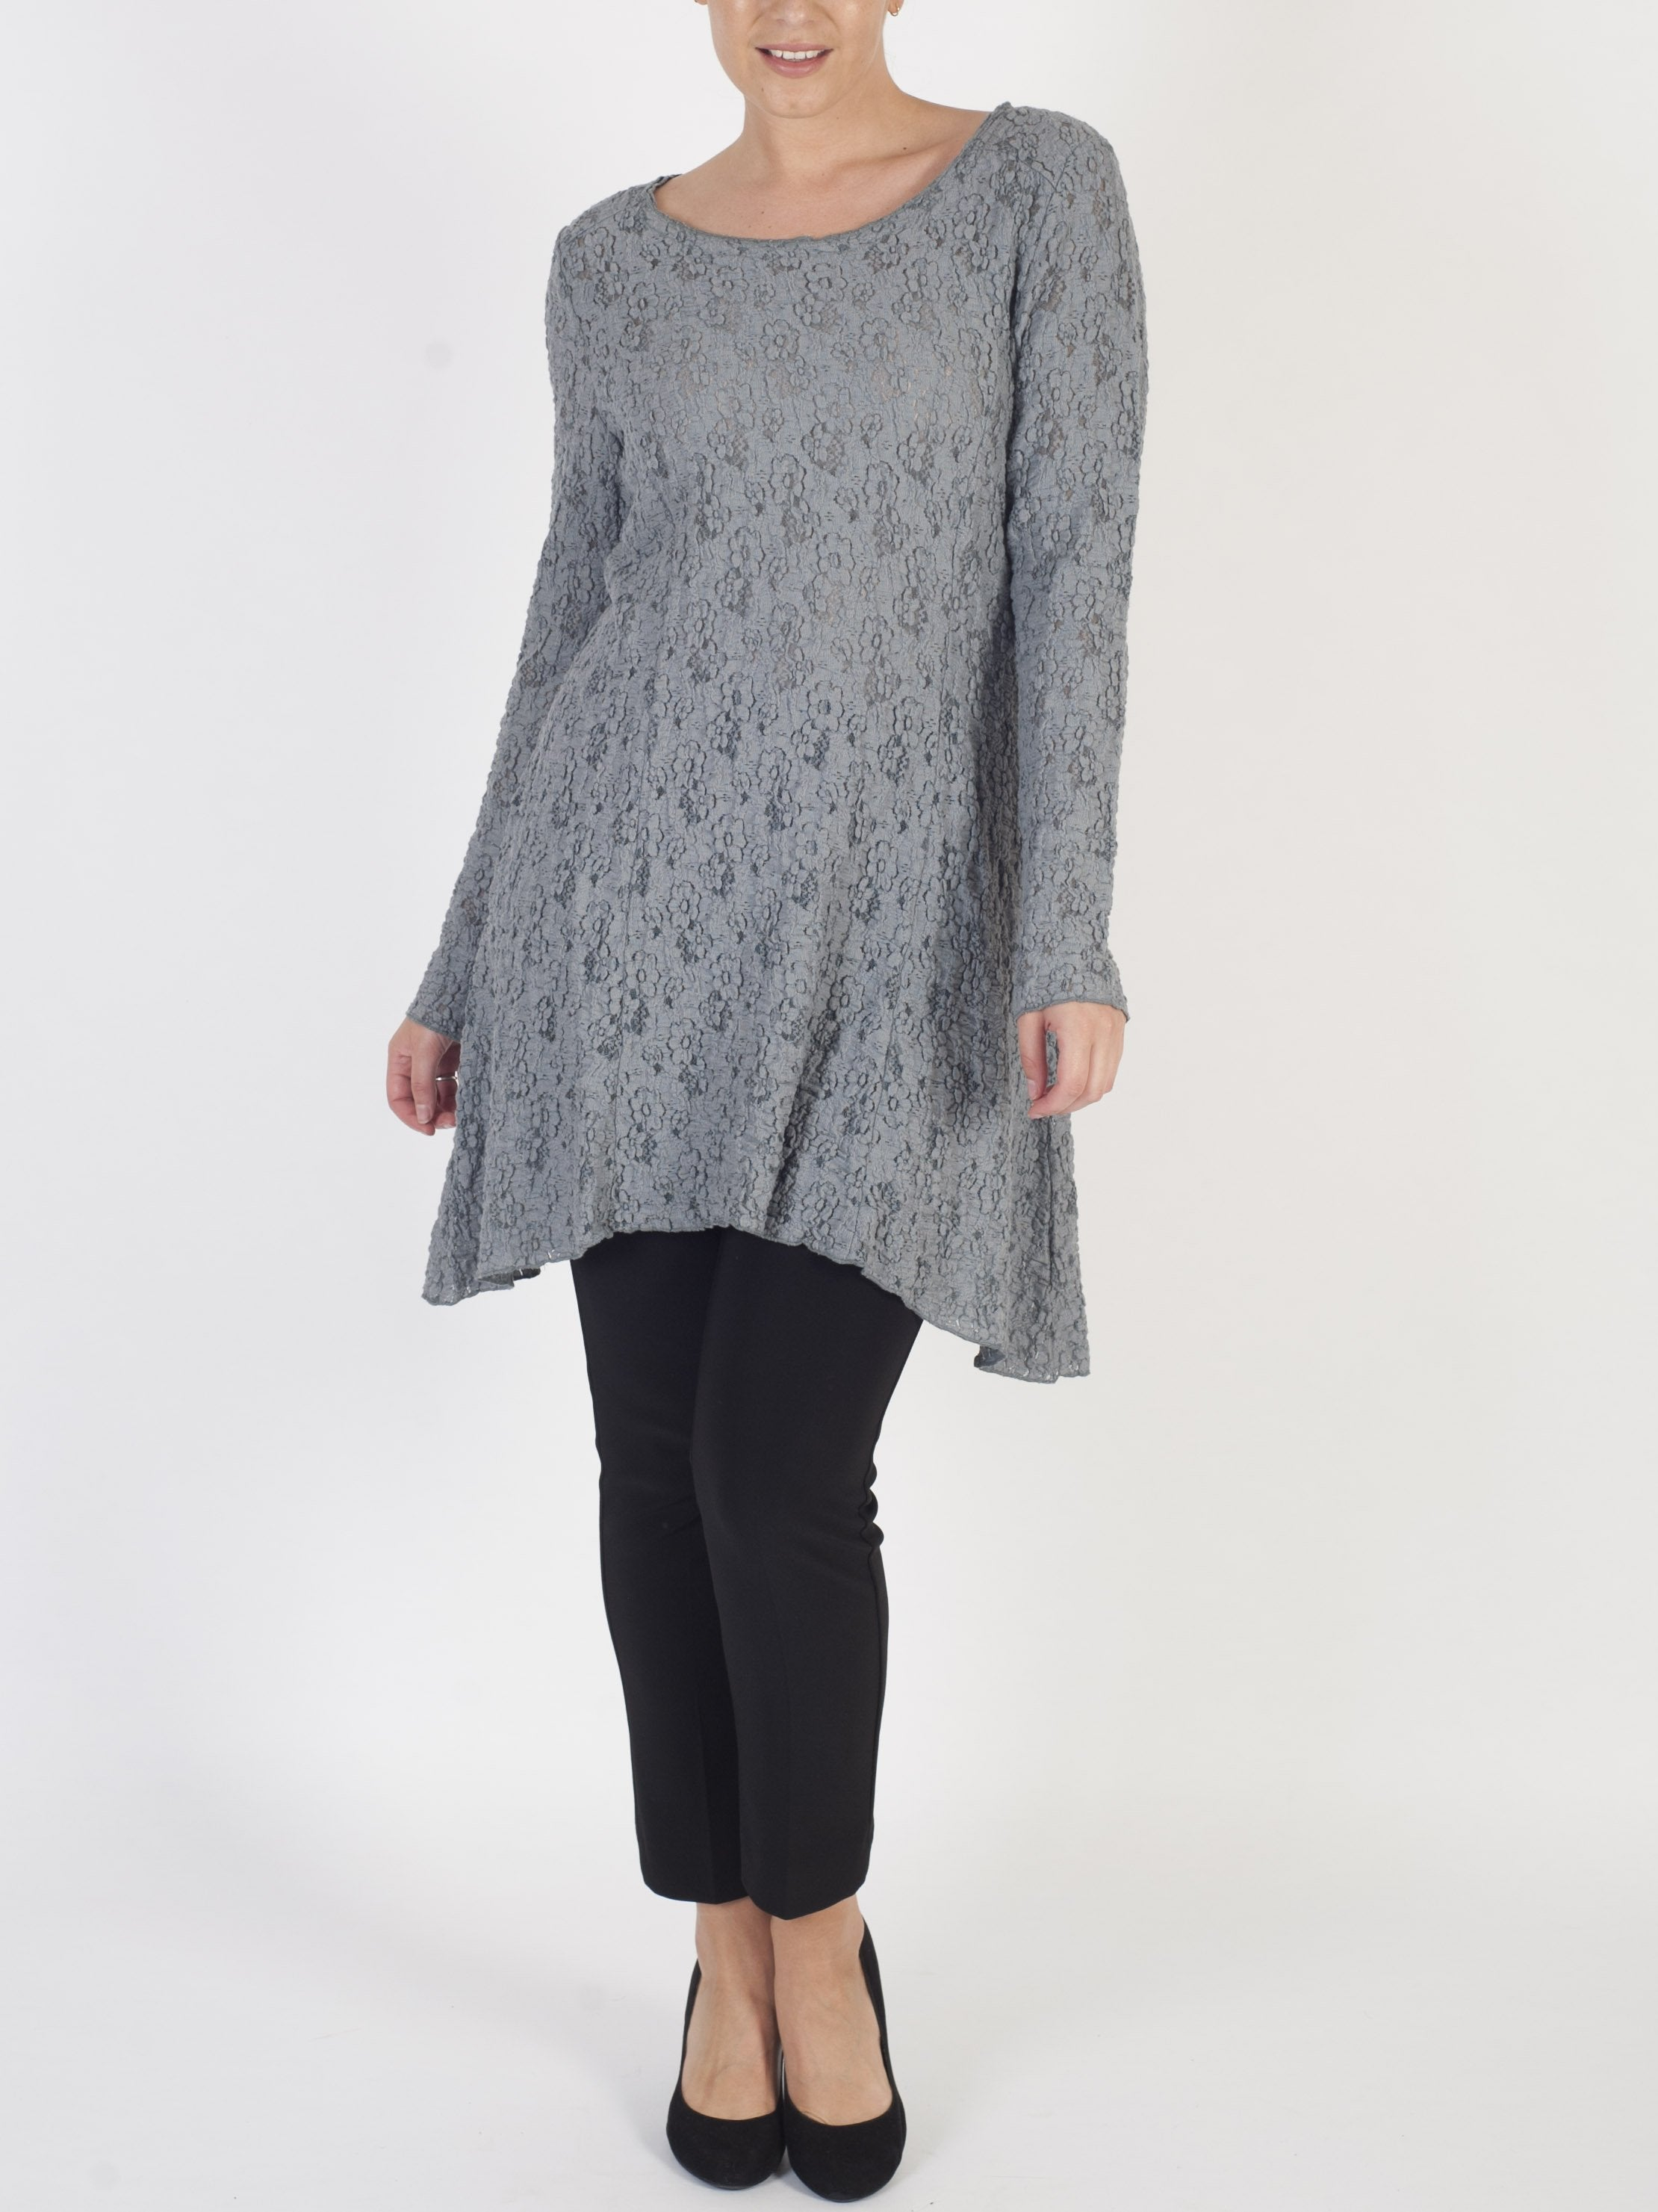 VETONO Grey Lace Tunic